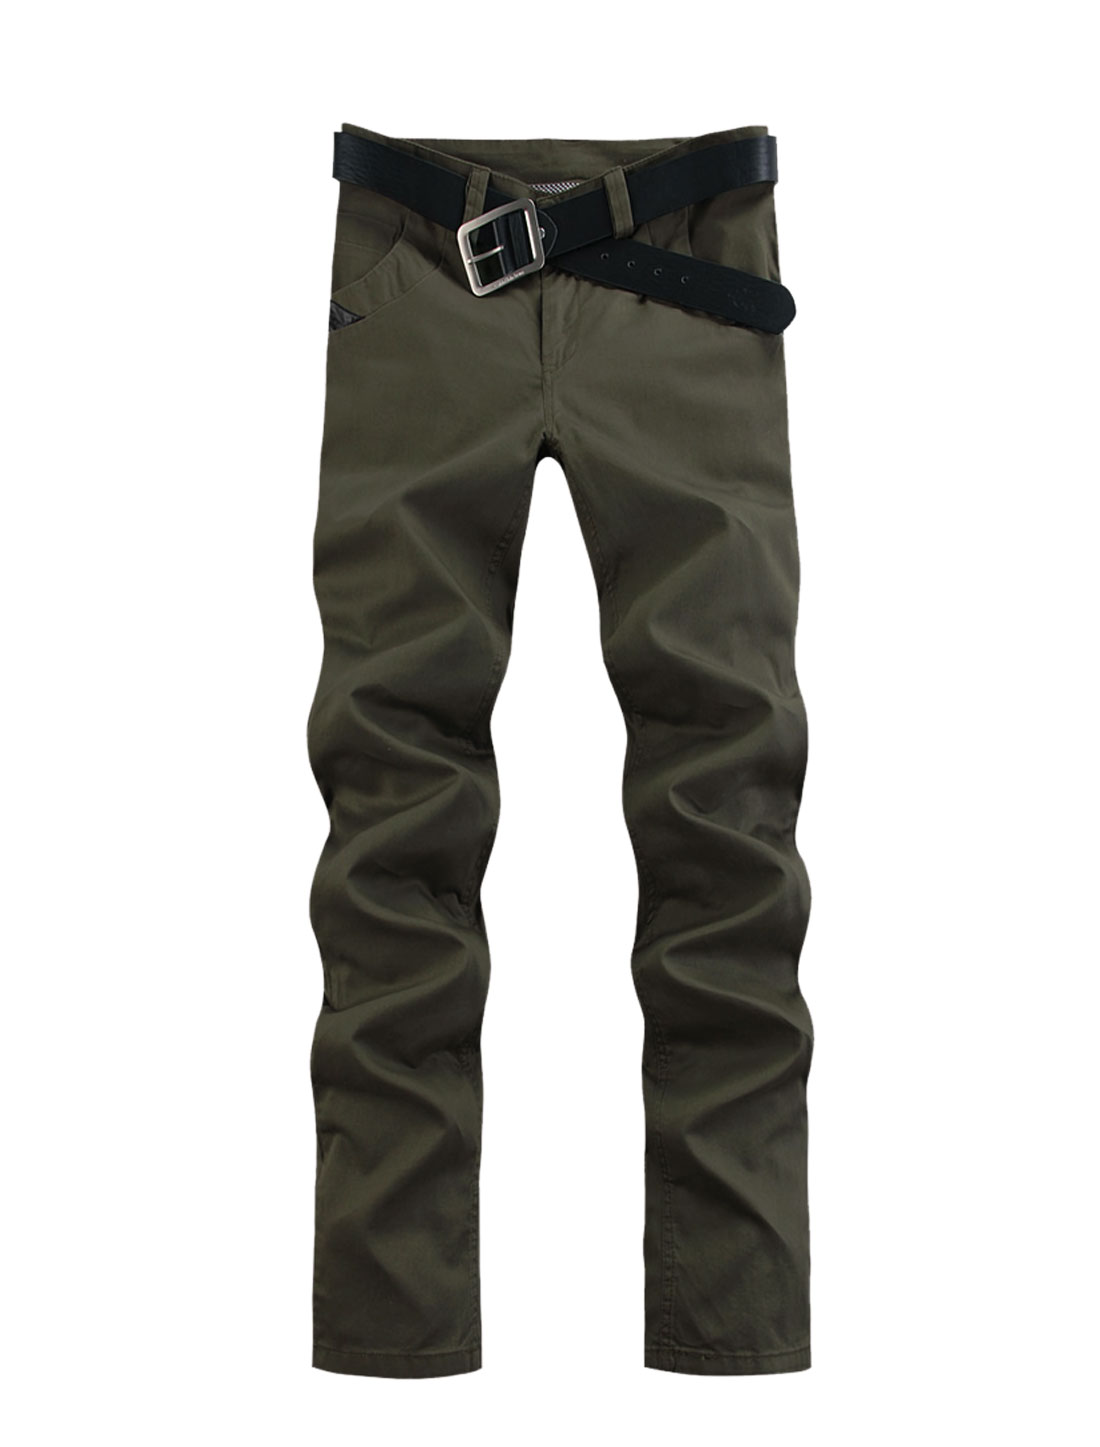 Men Mid Rise Zip Up Imitation Leather Pants Army Green W40